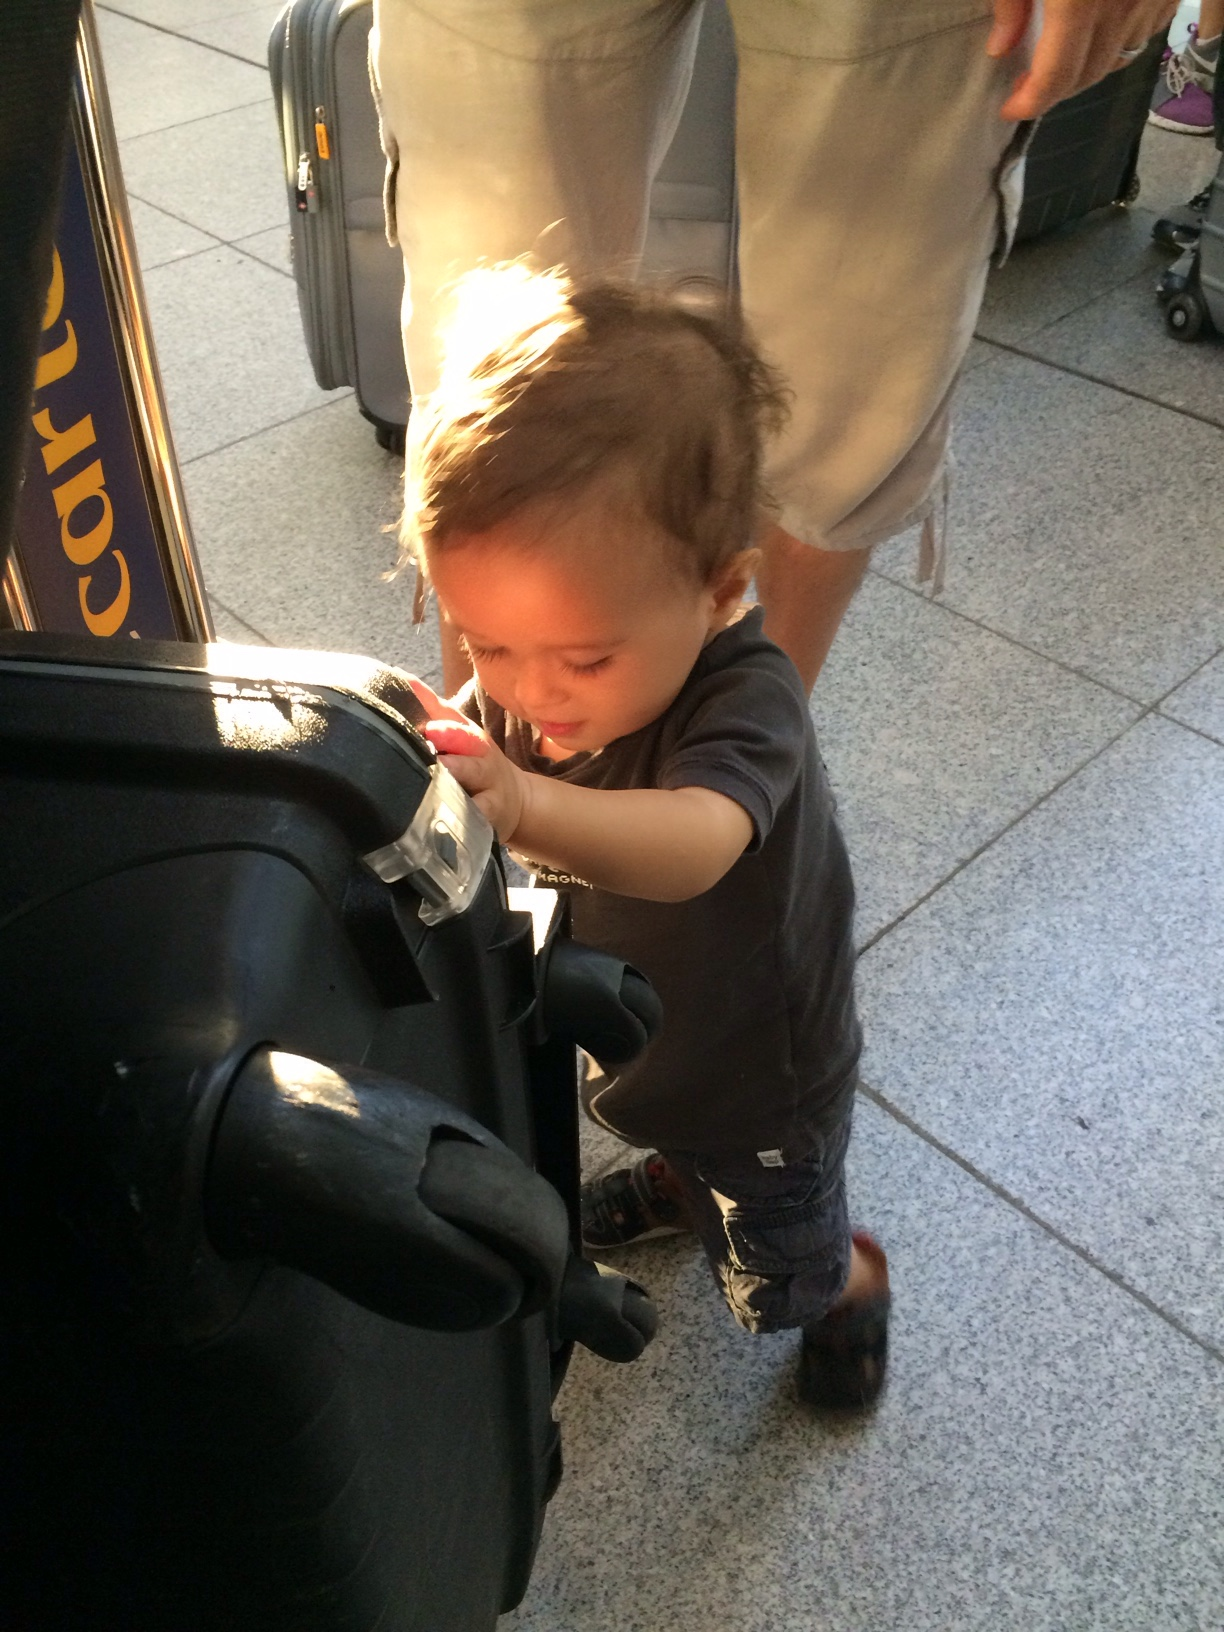 Baby boy o pushing luggage